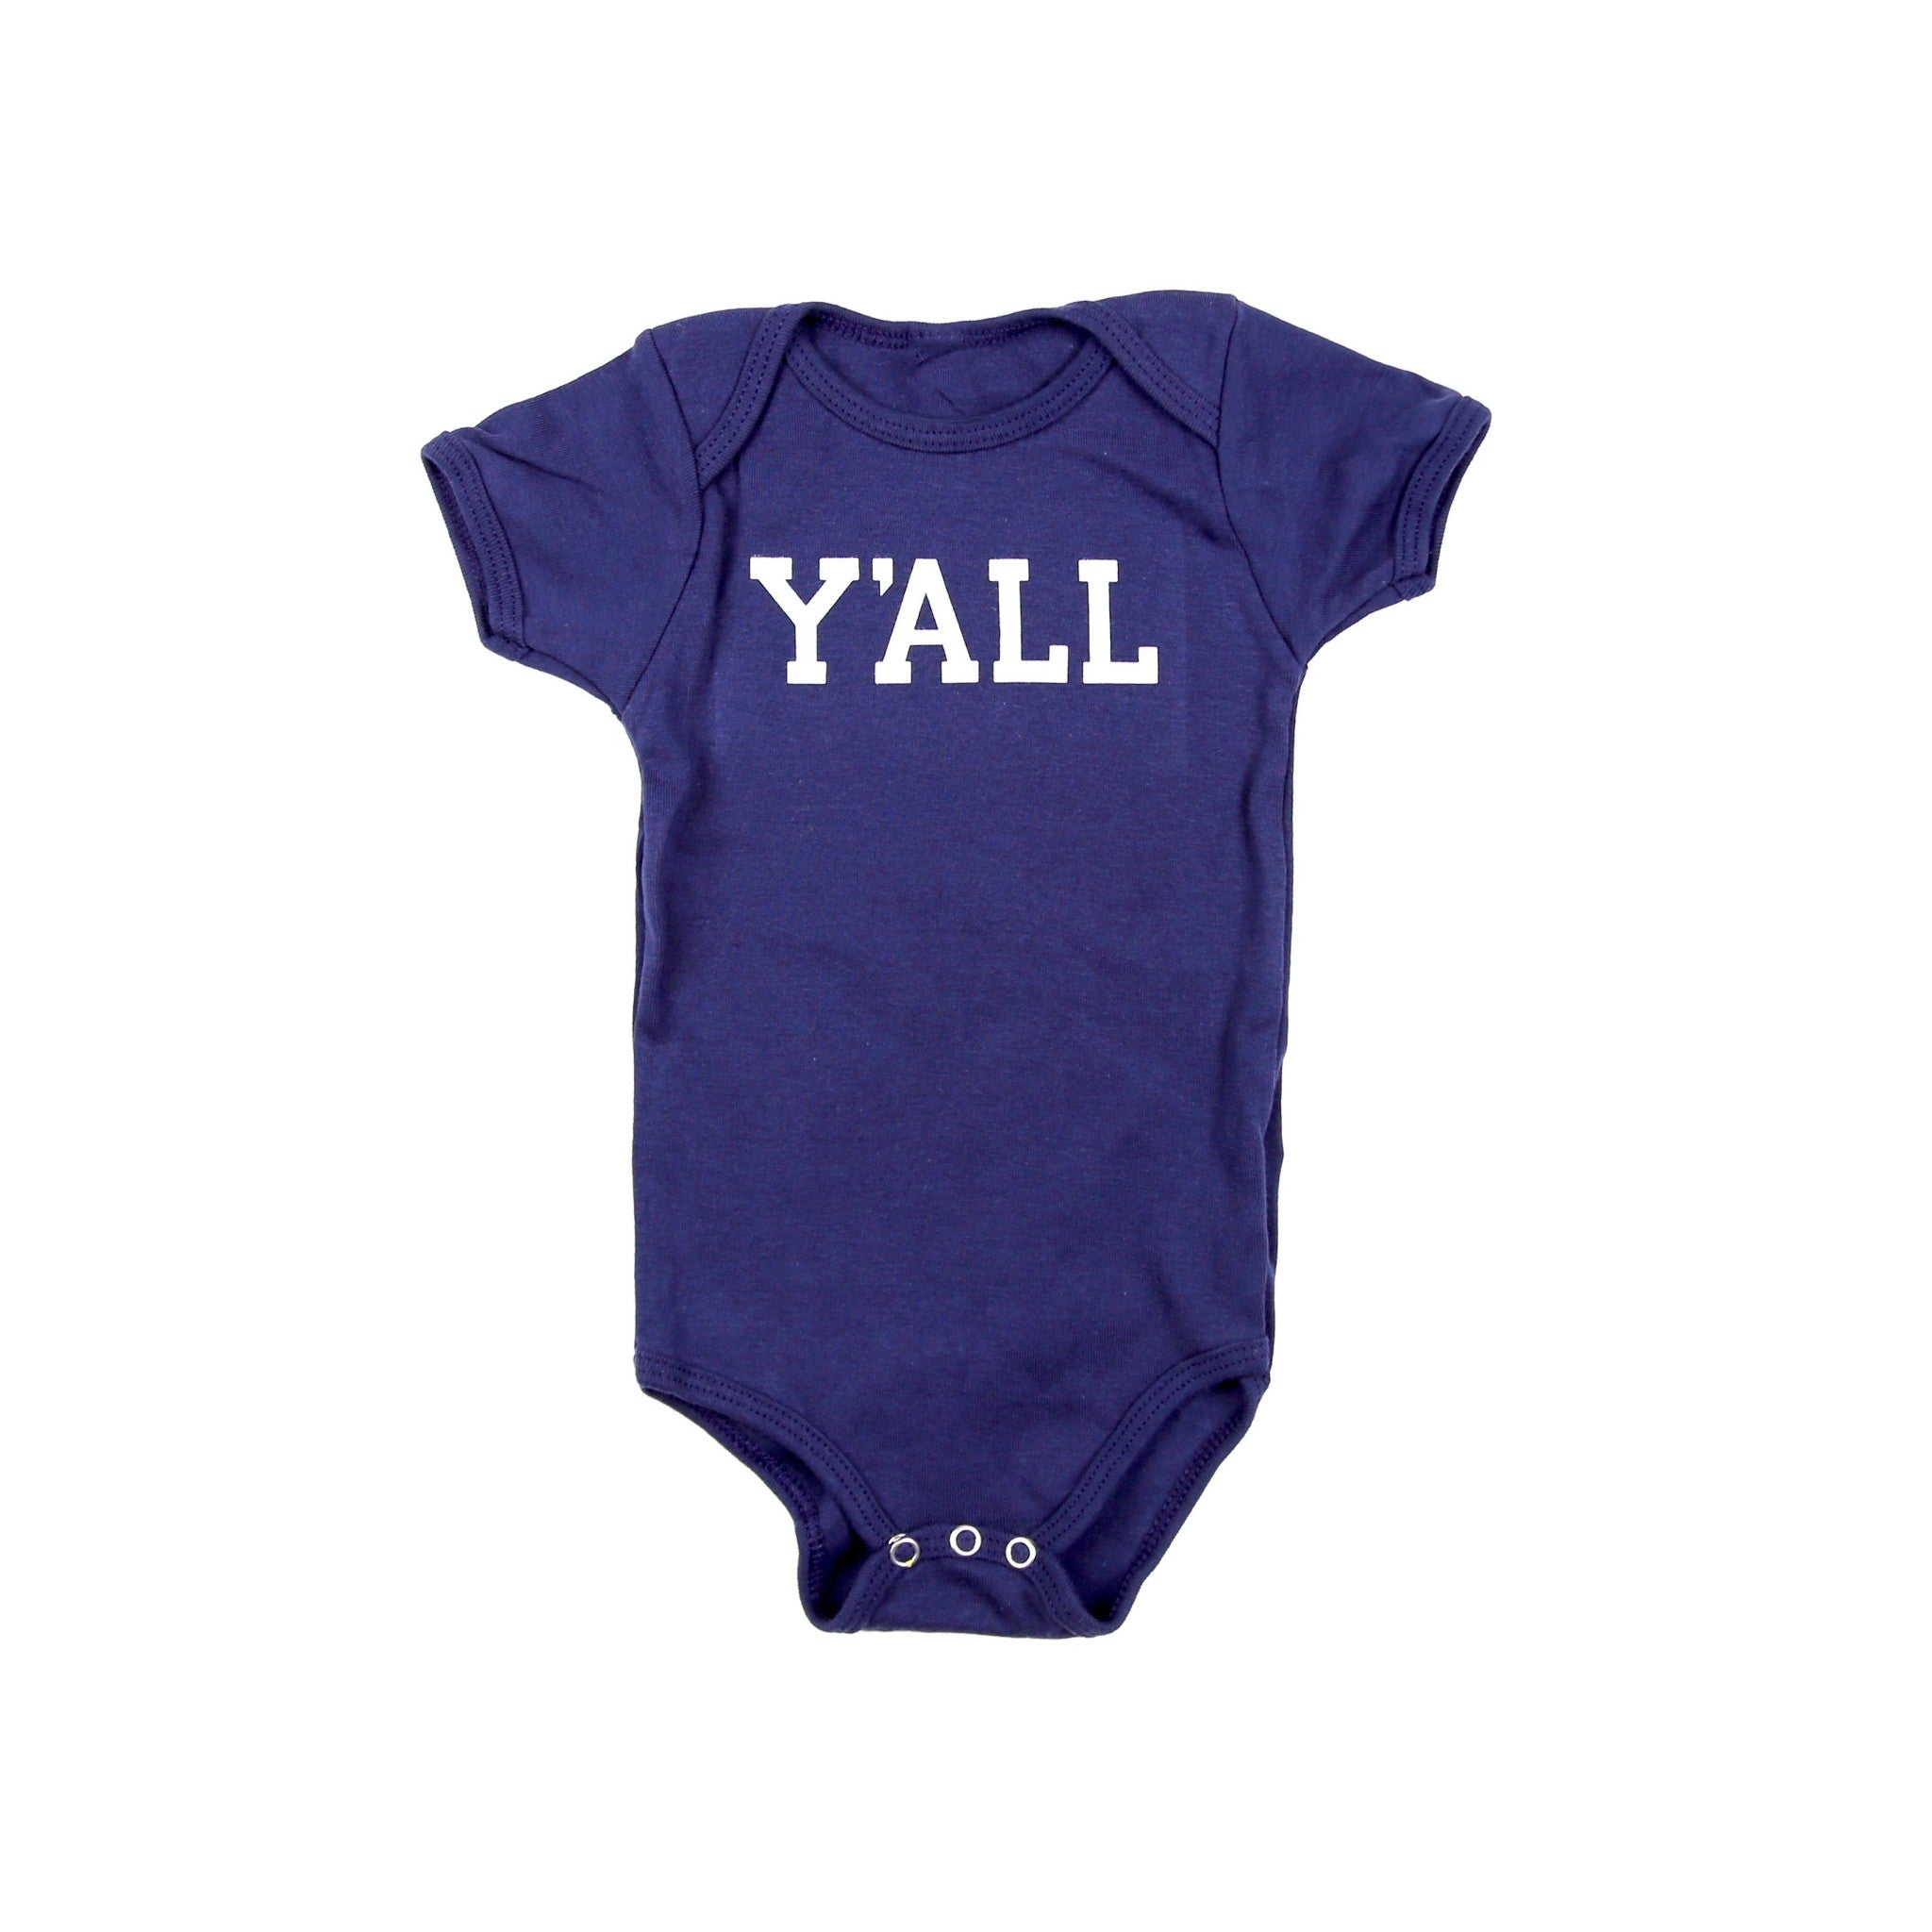 Y'ALL Onesie-Kids-KY for KY Store